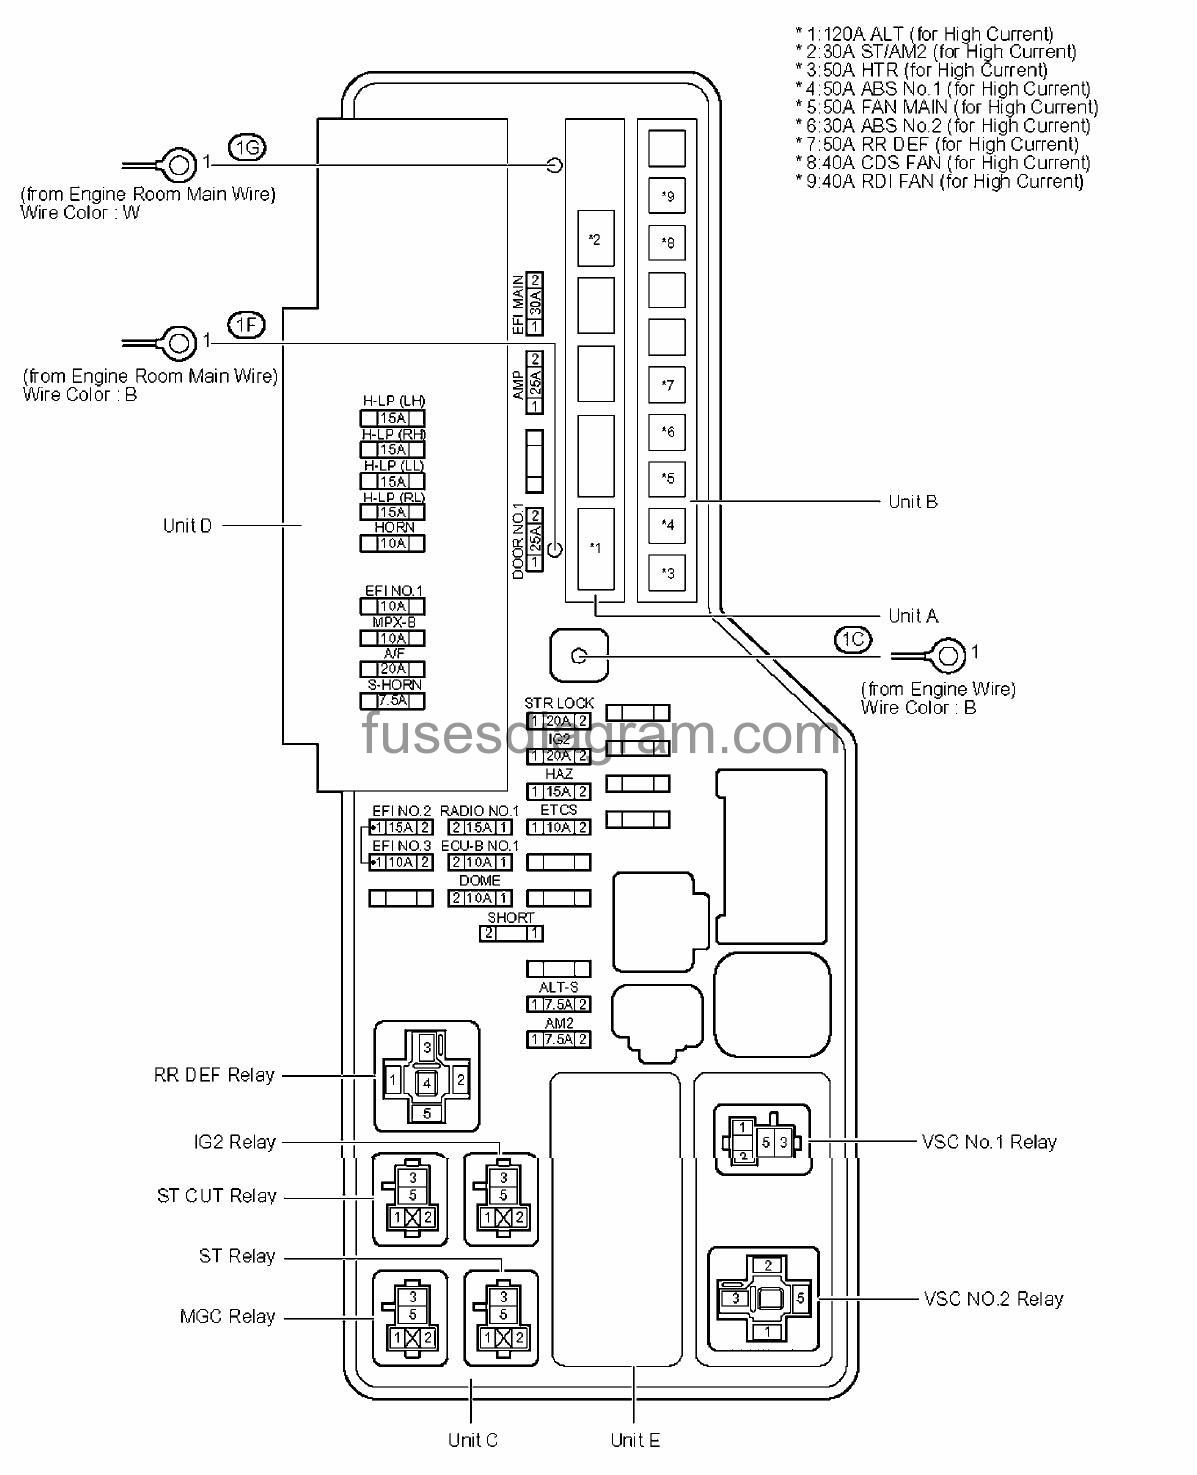 2005 solara radio wiring diagram